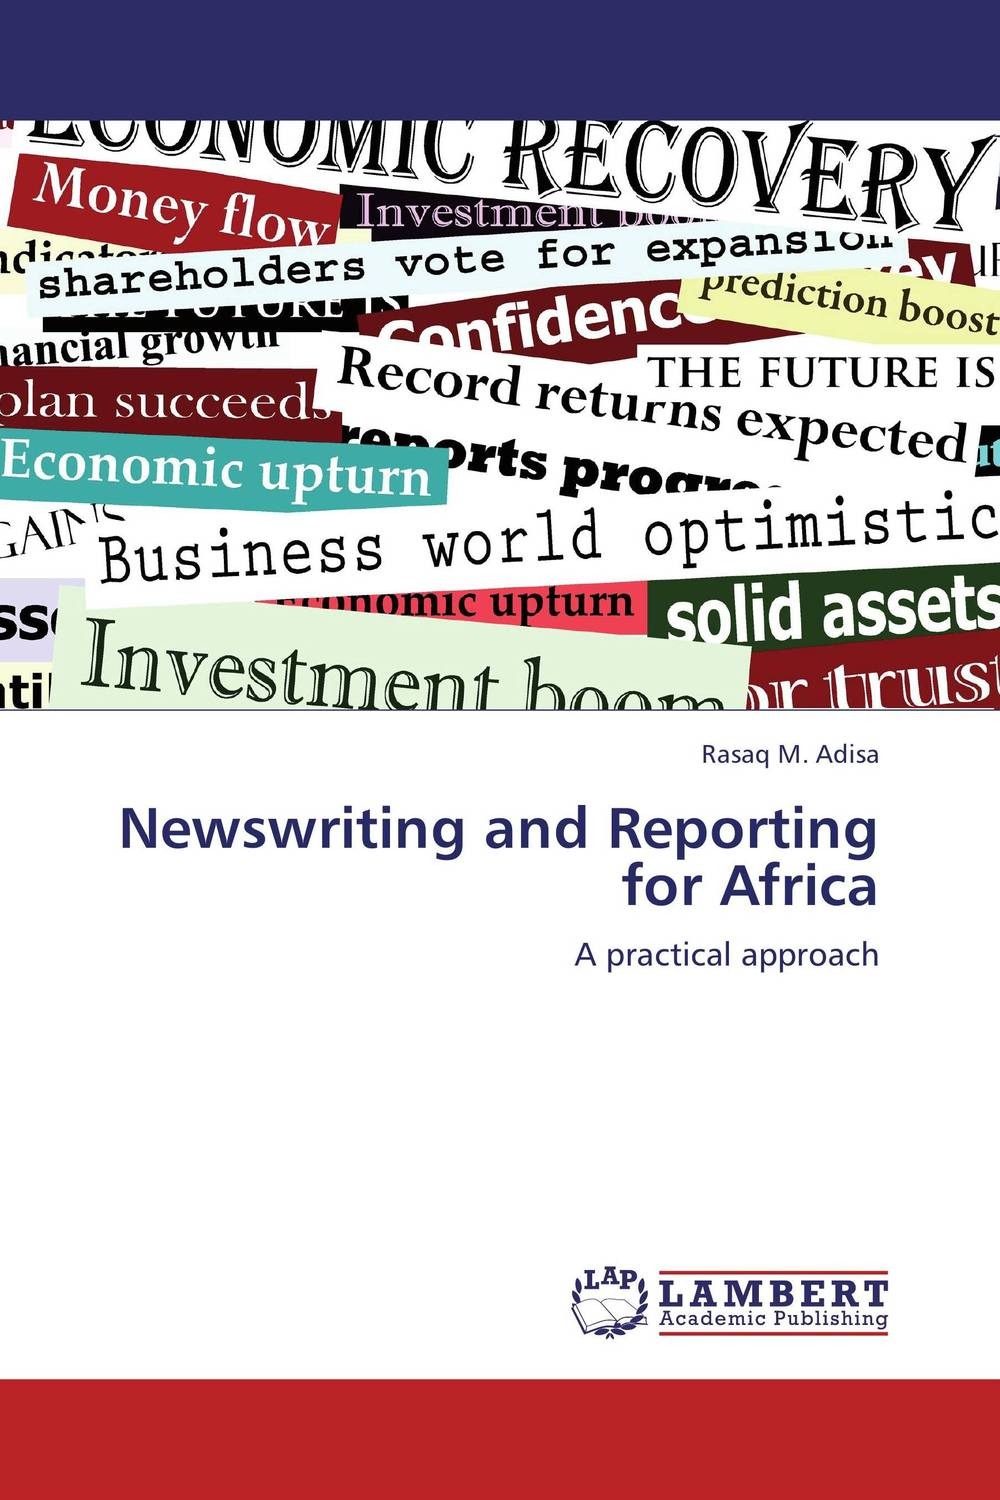 Newswriting and Reporting for Africa presidential nominee will address a gathering